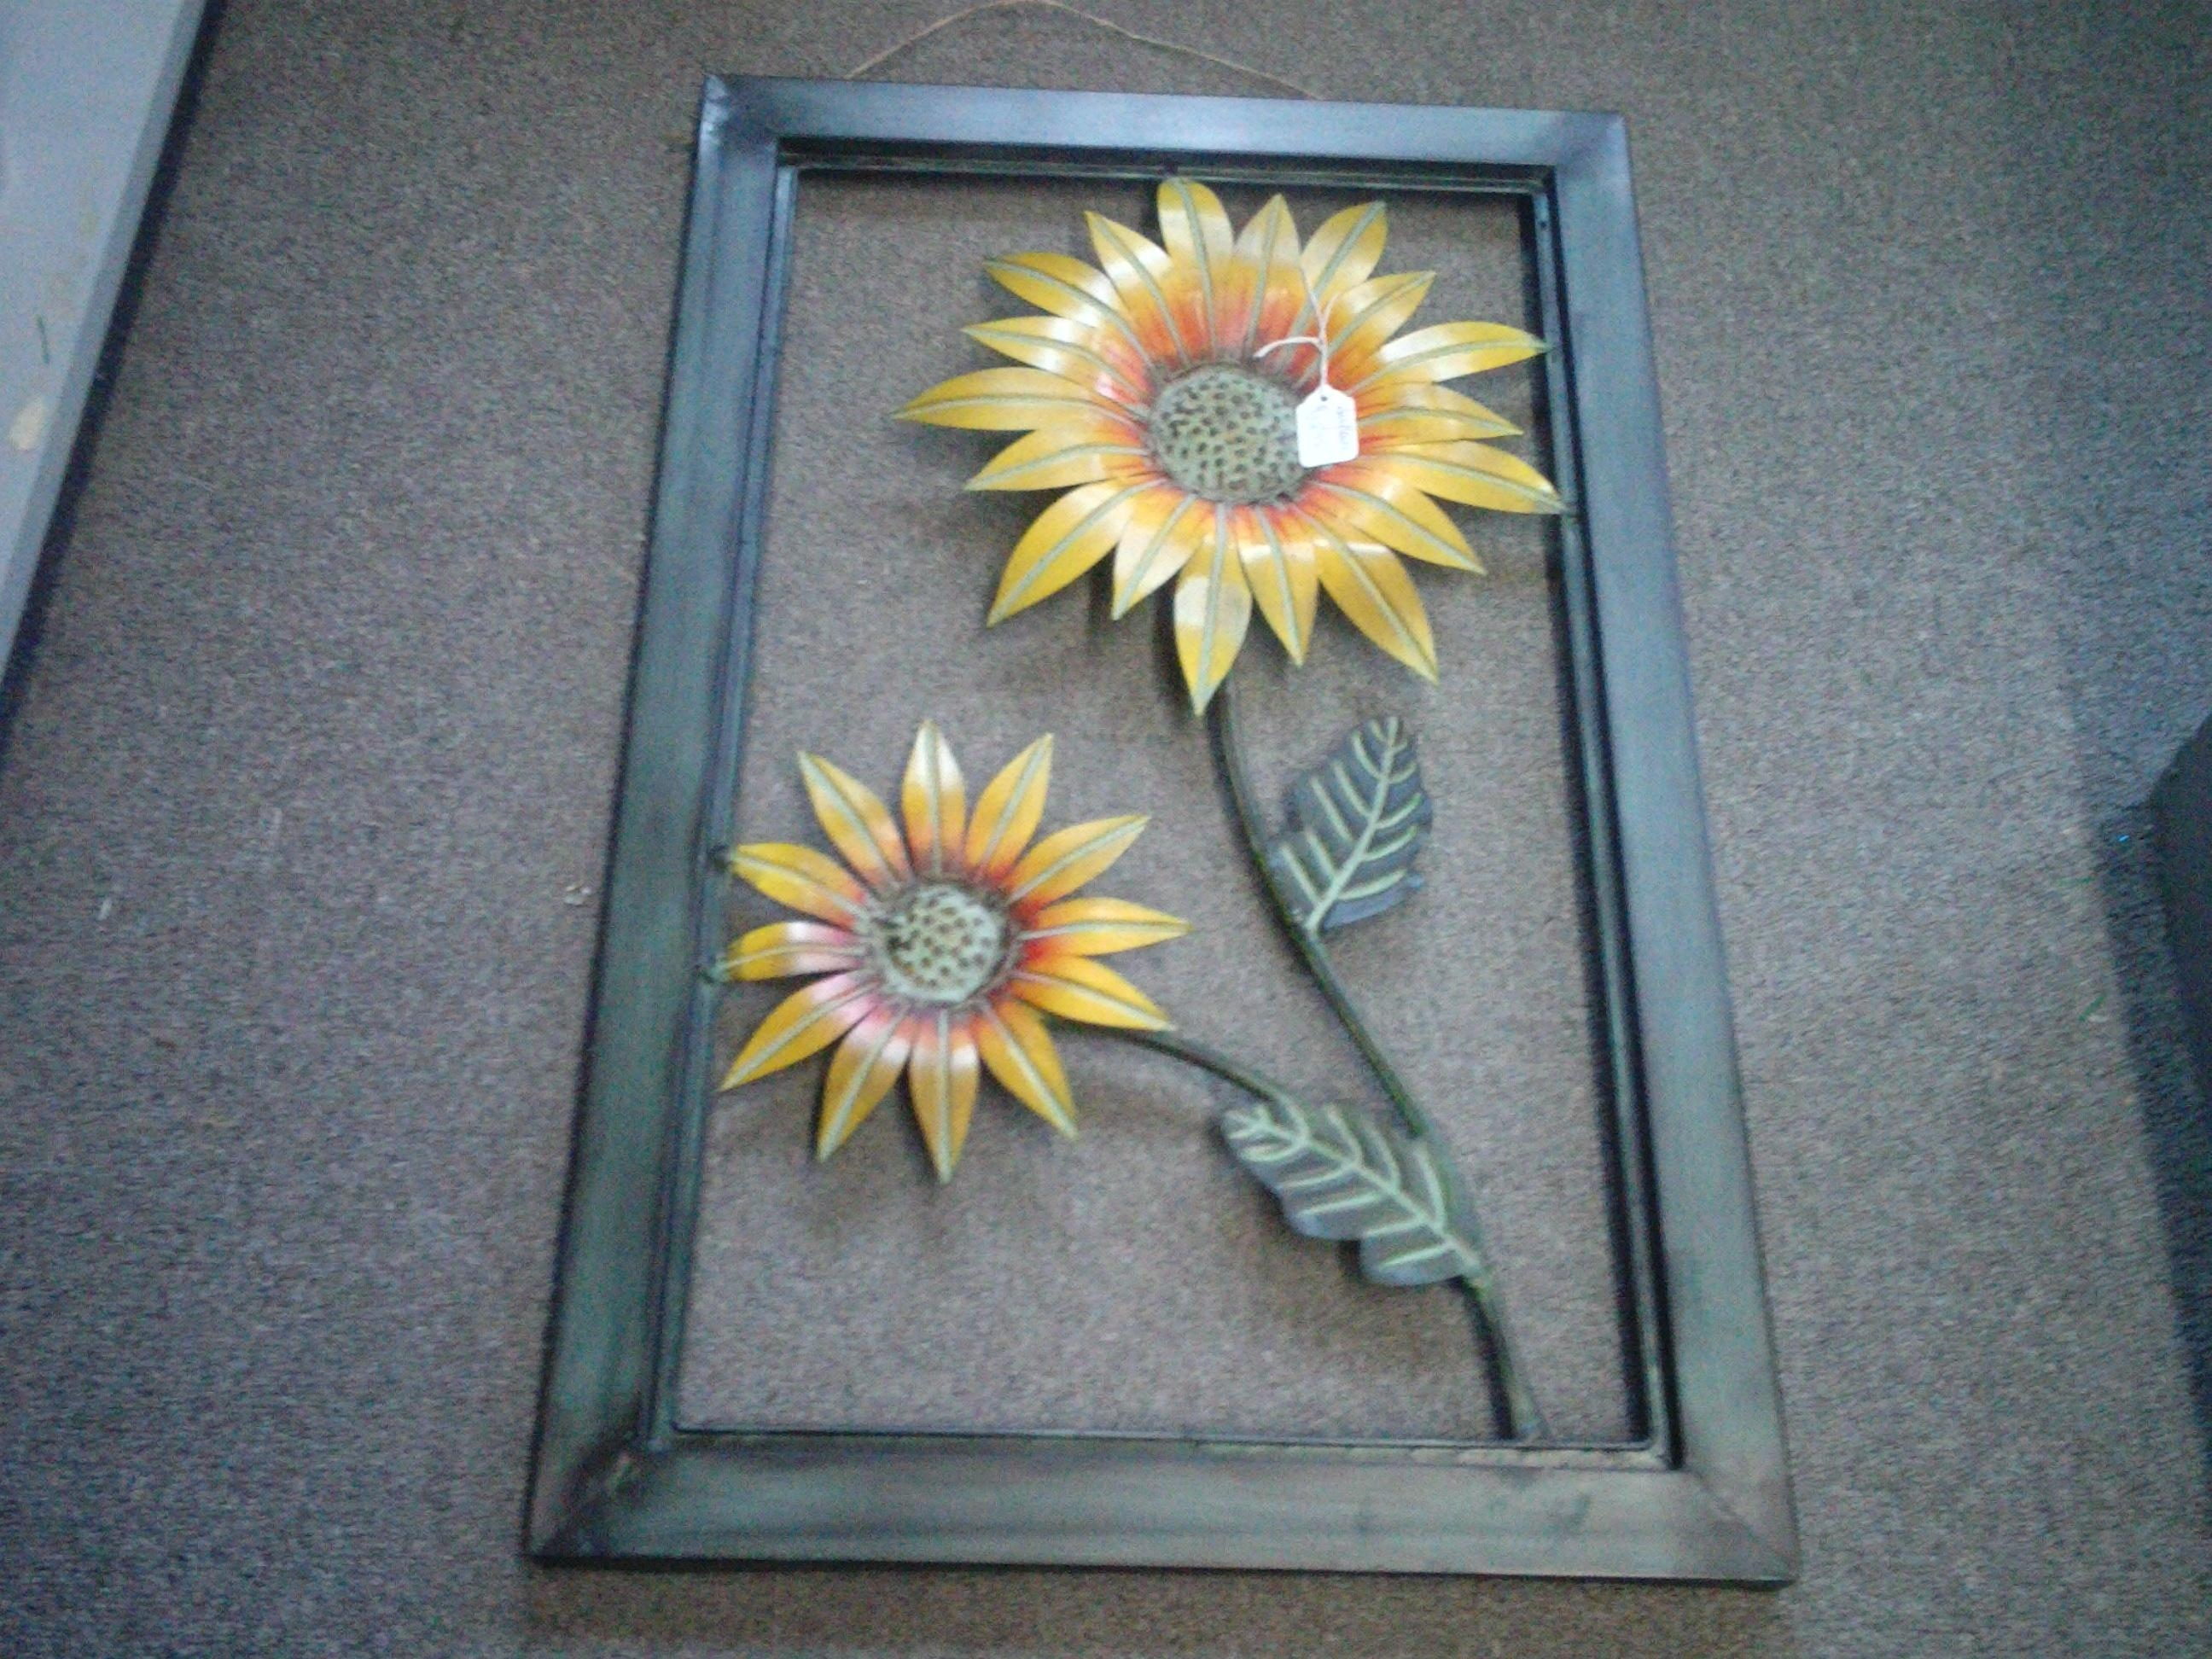 Sunflowers Wall Decor In The Kitchen Intended For Metal Sunflower Wall Art (Image 11 of 20)